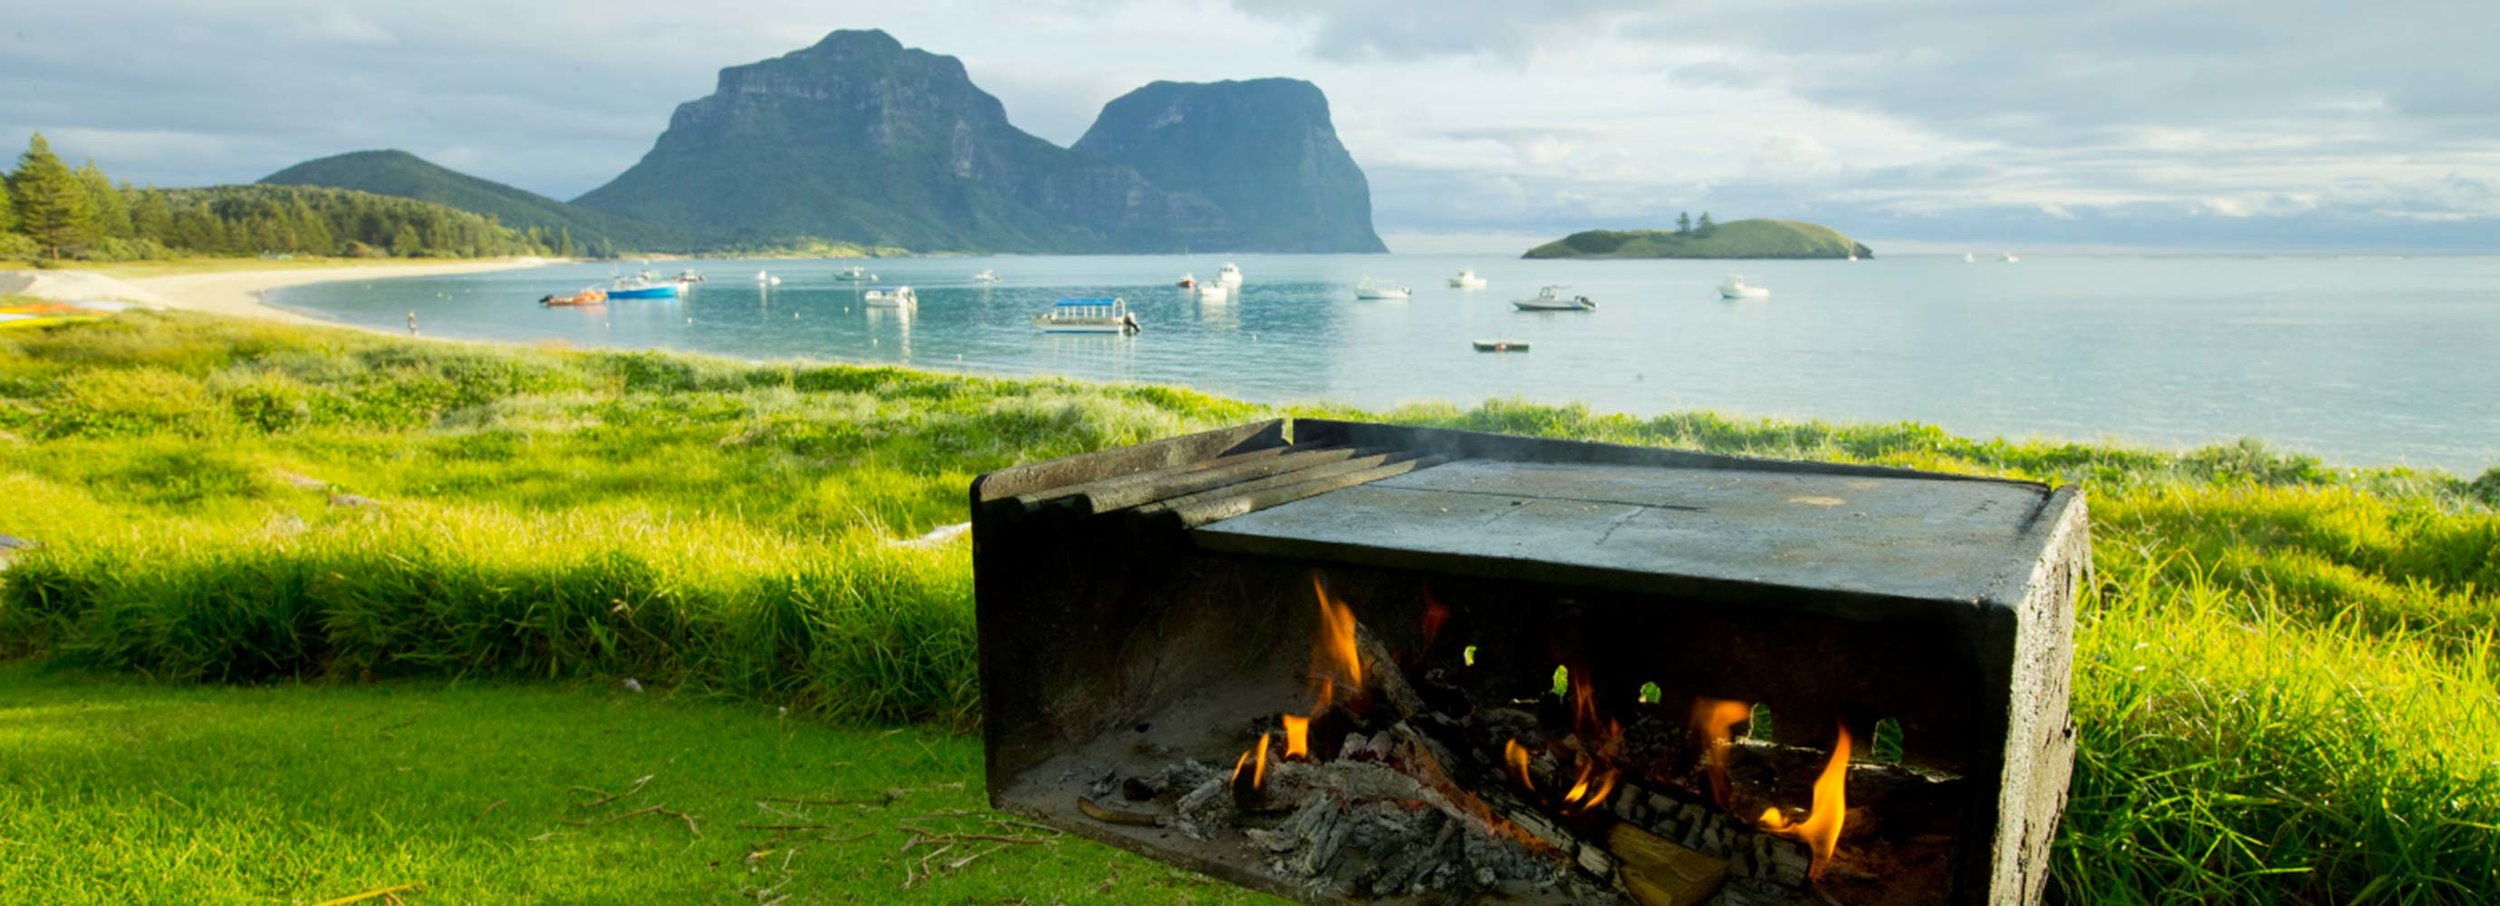 Lord Howe's 11 beautiful beaches are perfectly suited to barbequing outdoors, with their golden sand and spectacular views of the island. Pic credit: luxurylodgesofaustralia.com.au